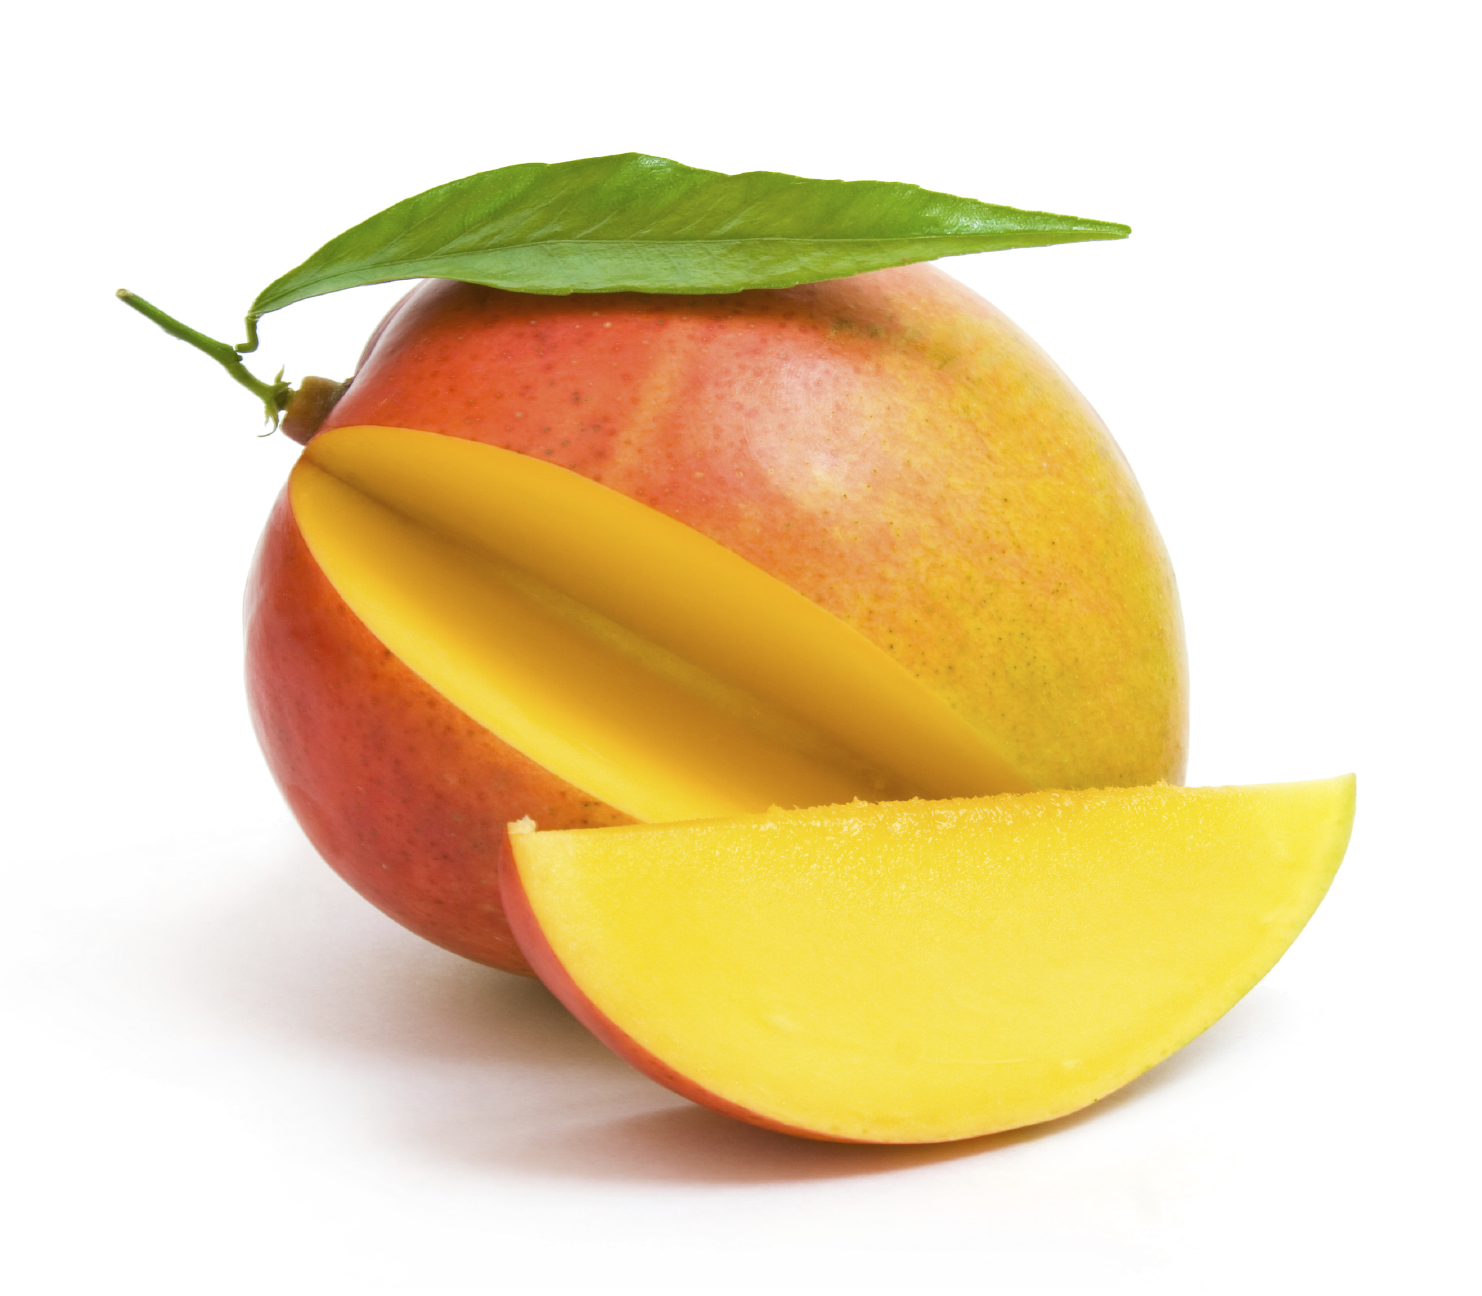 Mango Fruit Slice 106.41 Kb